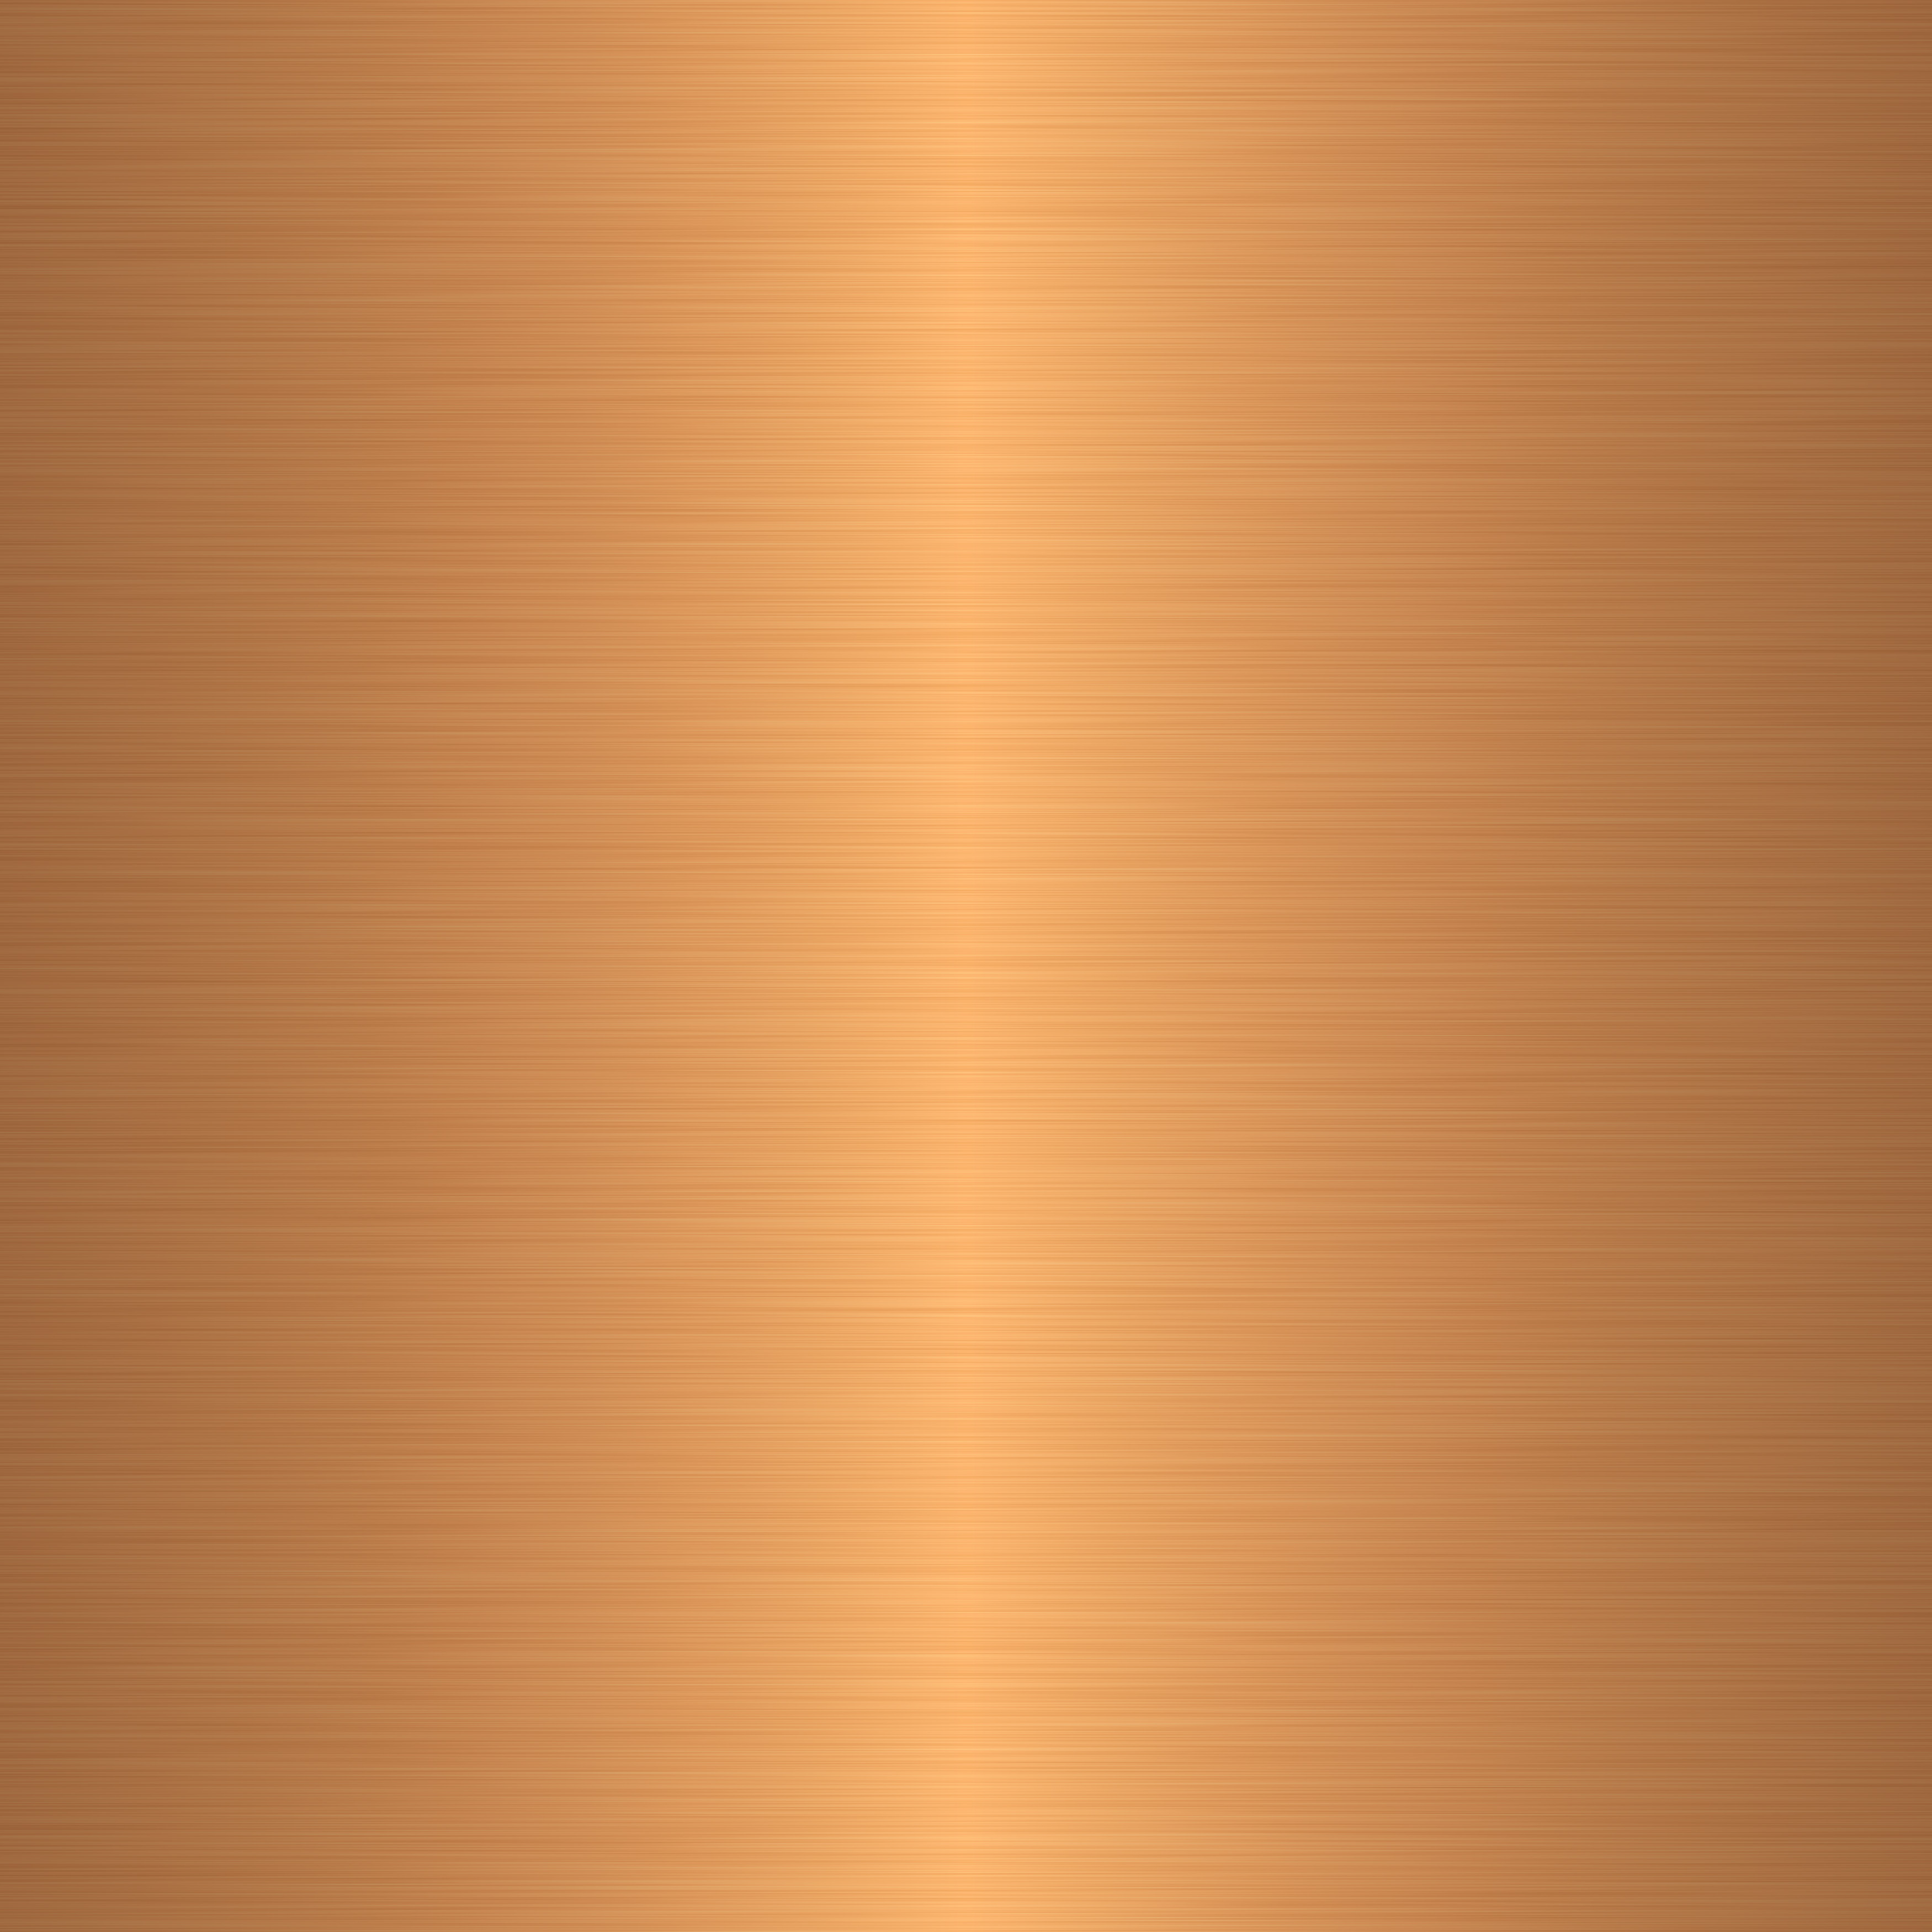 Shiny Copper Texture Shiny copper texture shiny 3500x3500